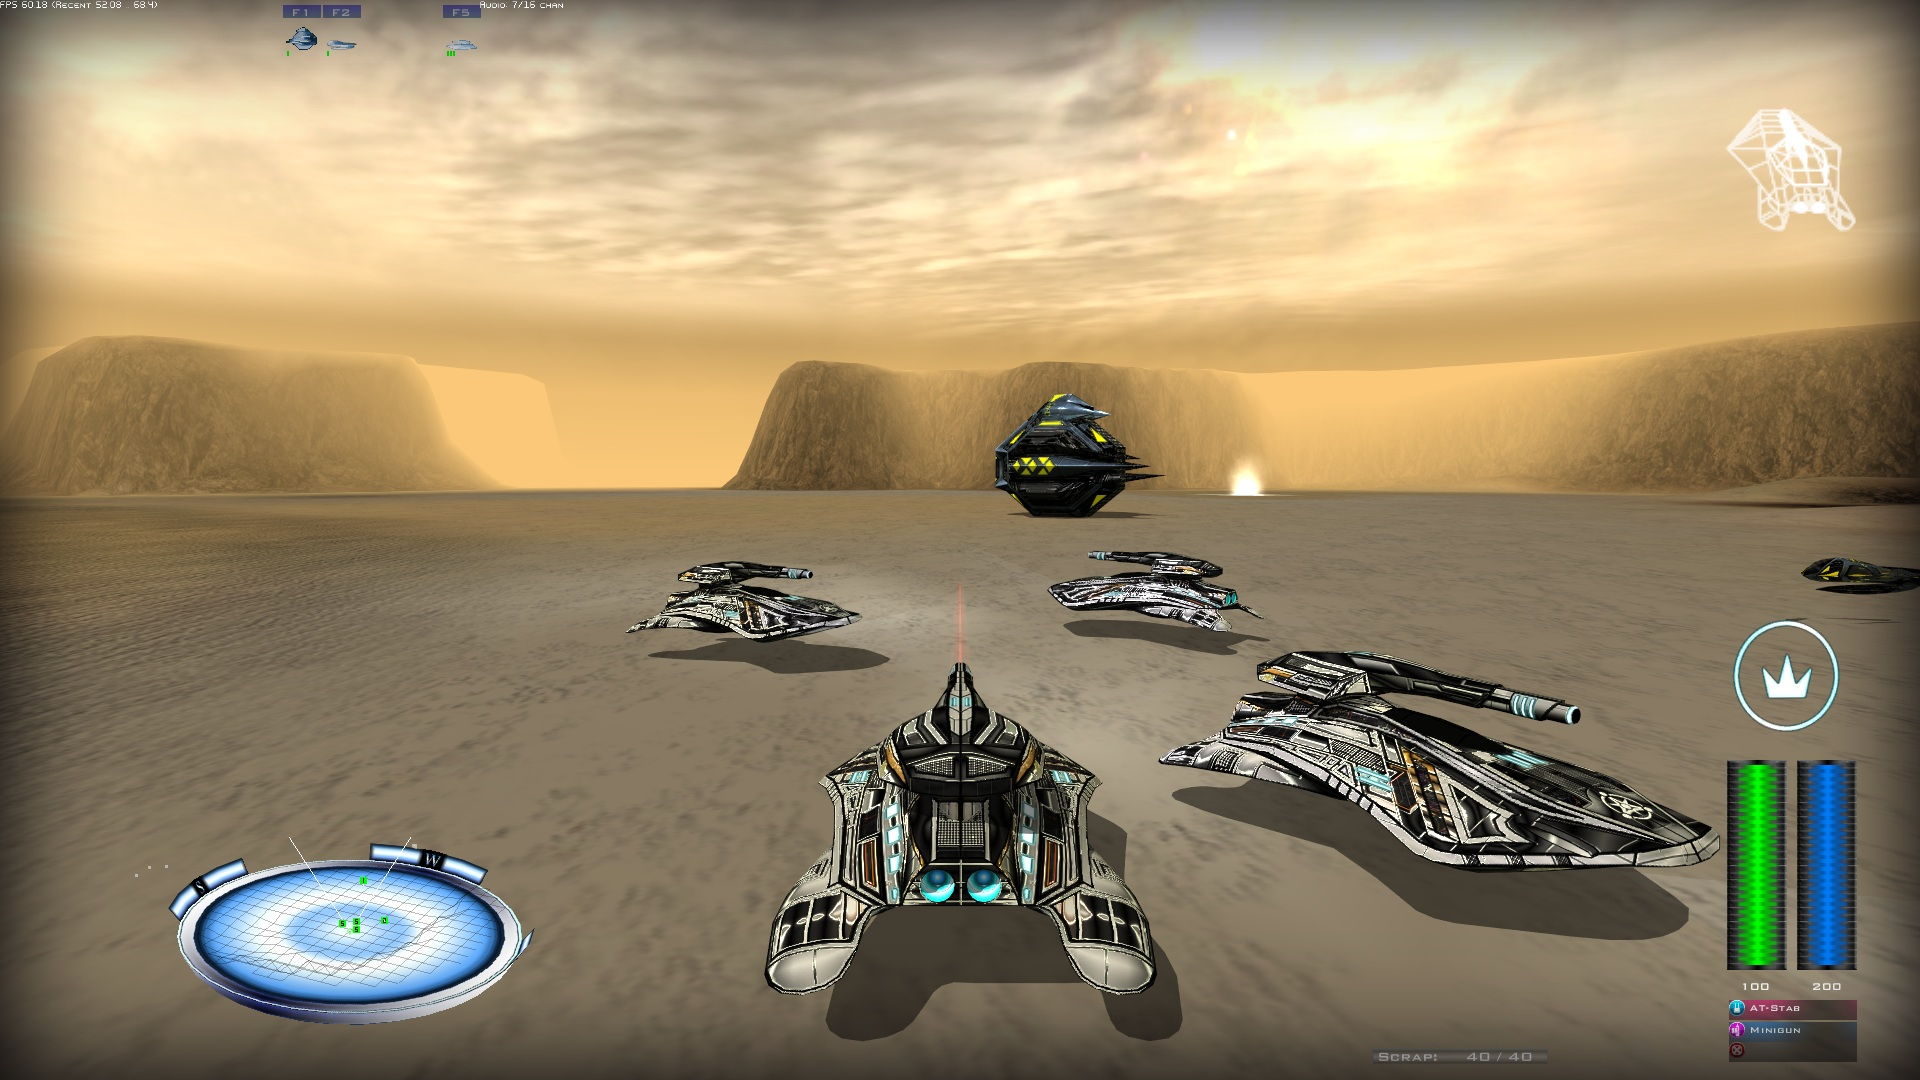 Hd sabre tank image battlezone ii hd mod for for Battlezone 2